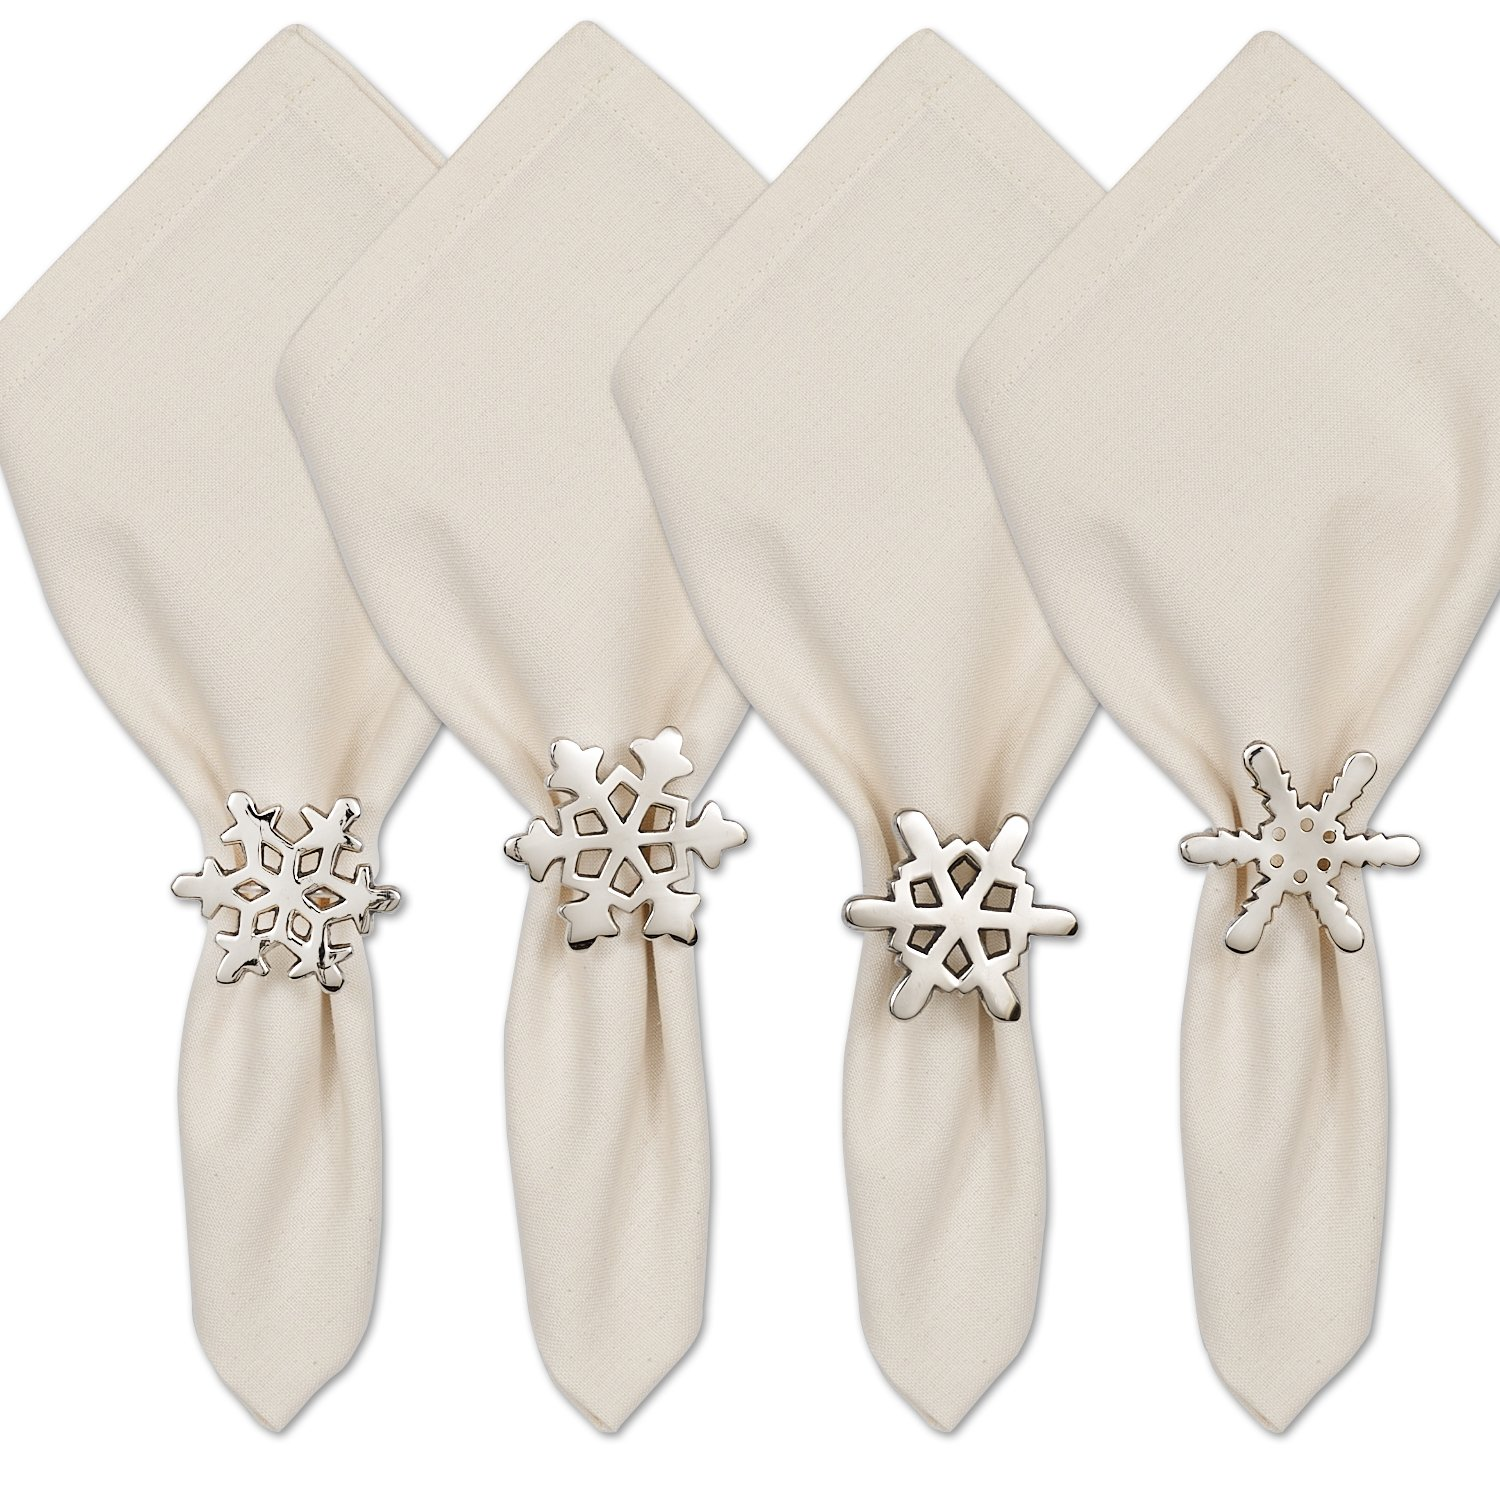 DII Napkin Rings for Holiday Parties, Winter Fun, Wedding Receptions, Family Gatherings, & Everyday Use - Silver Snowflake, Set of 4